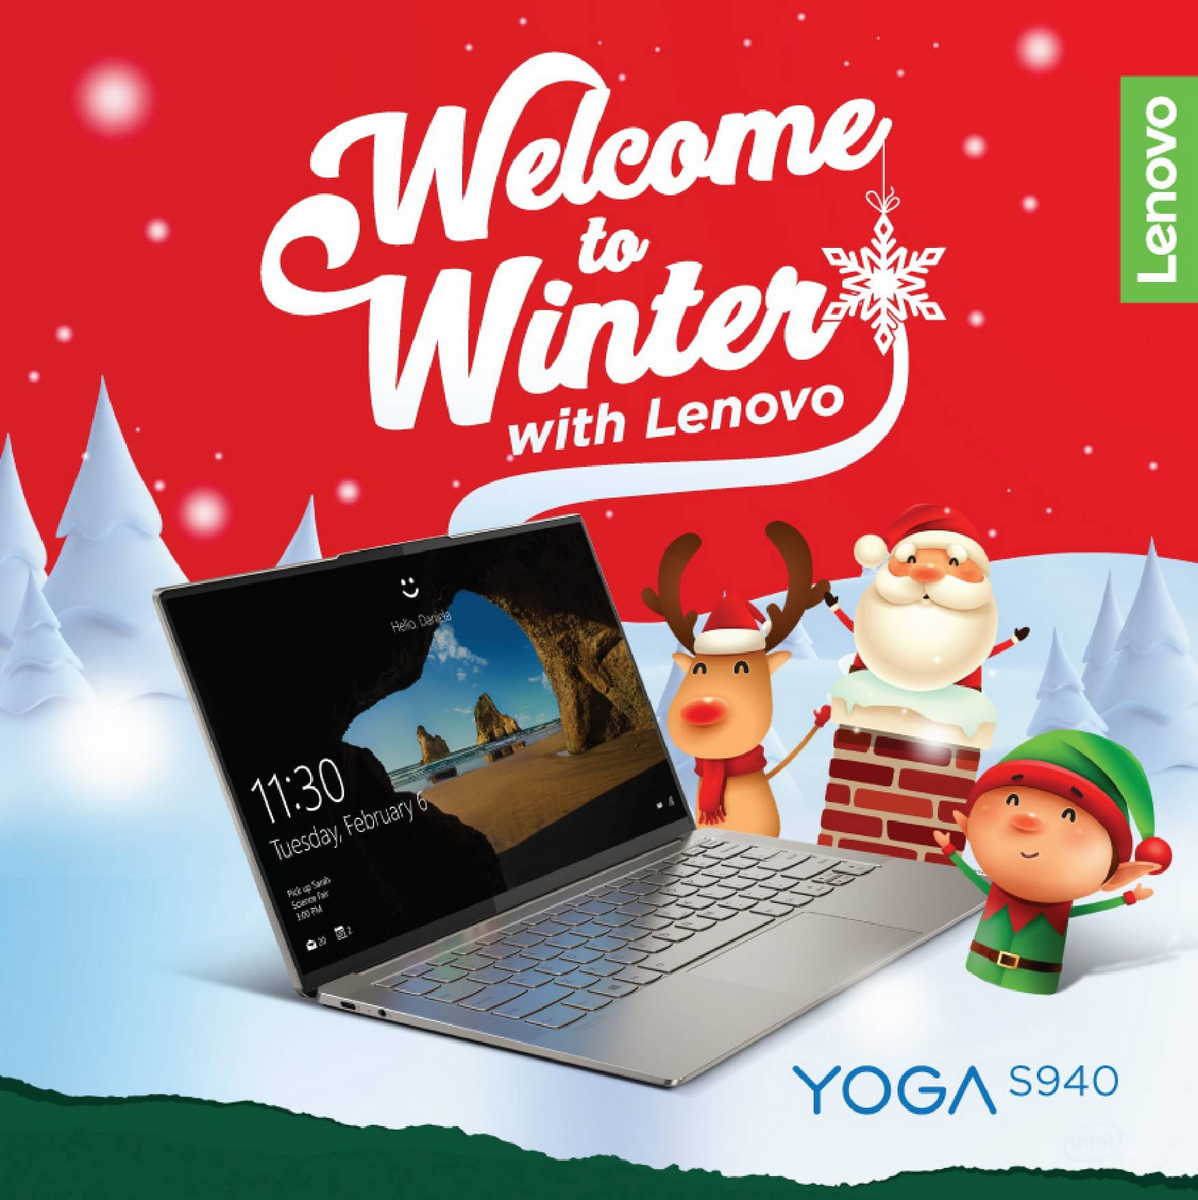 welcome to winter with Lenovo